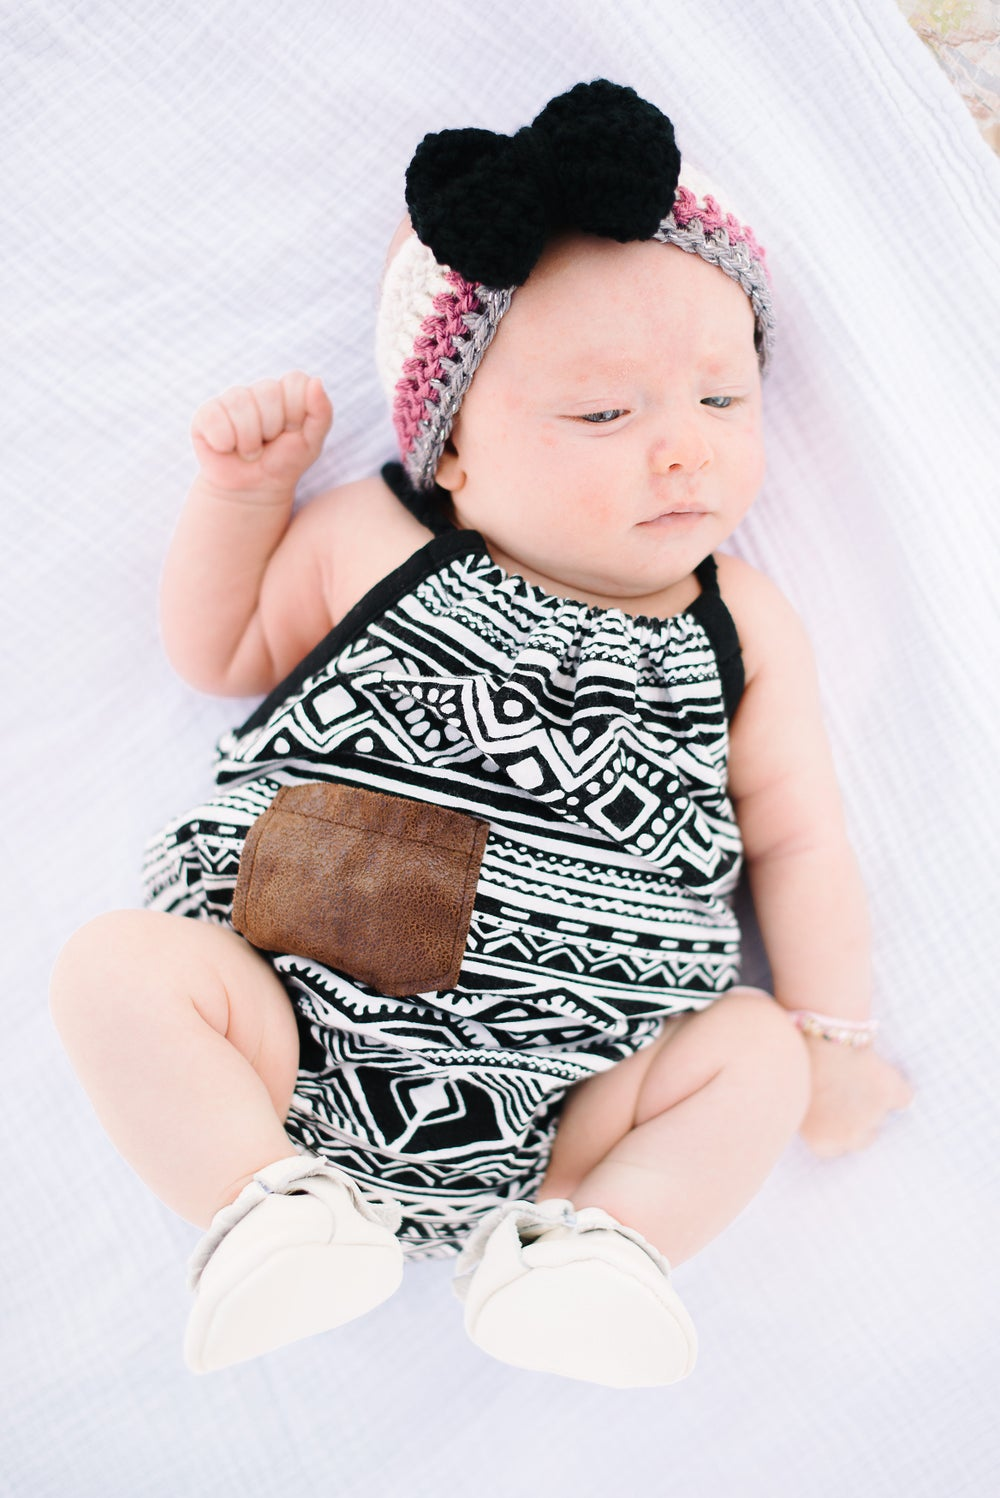 Image of Bow headwraps (custom designs and stripes)